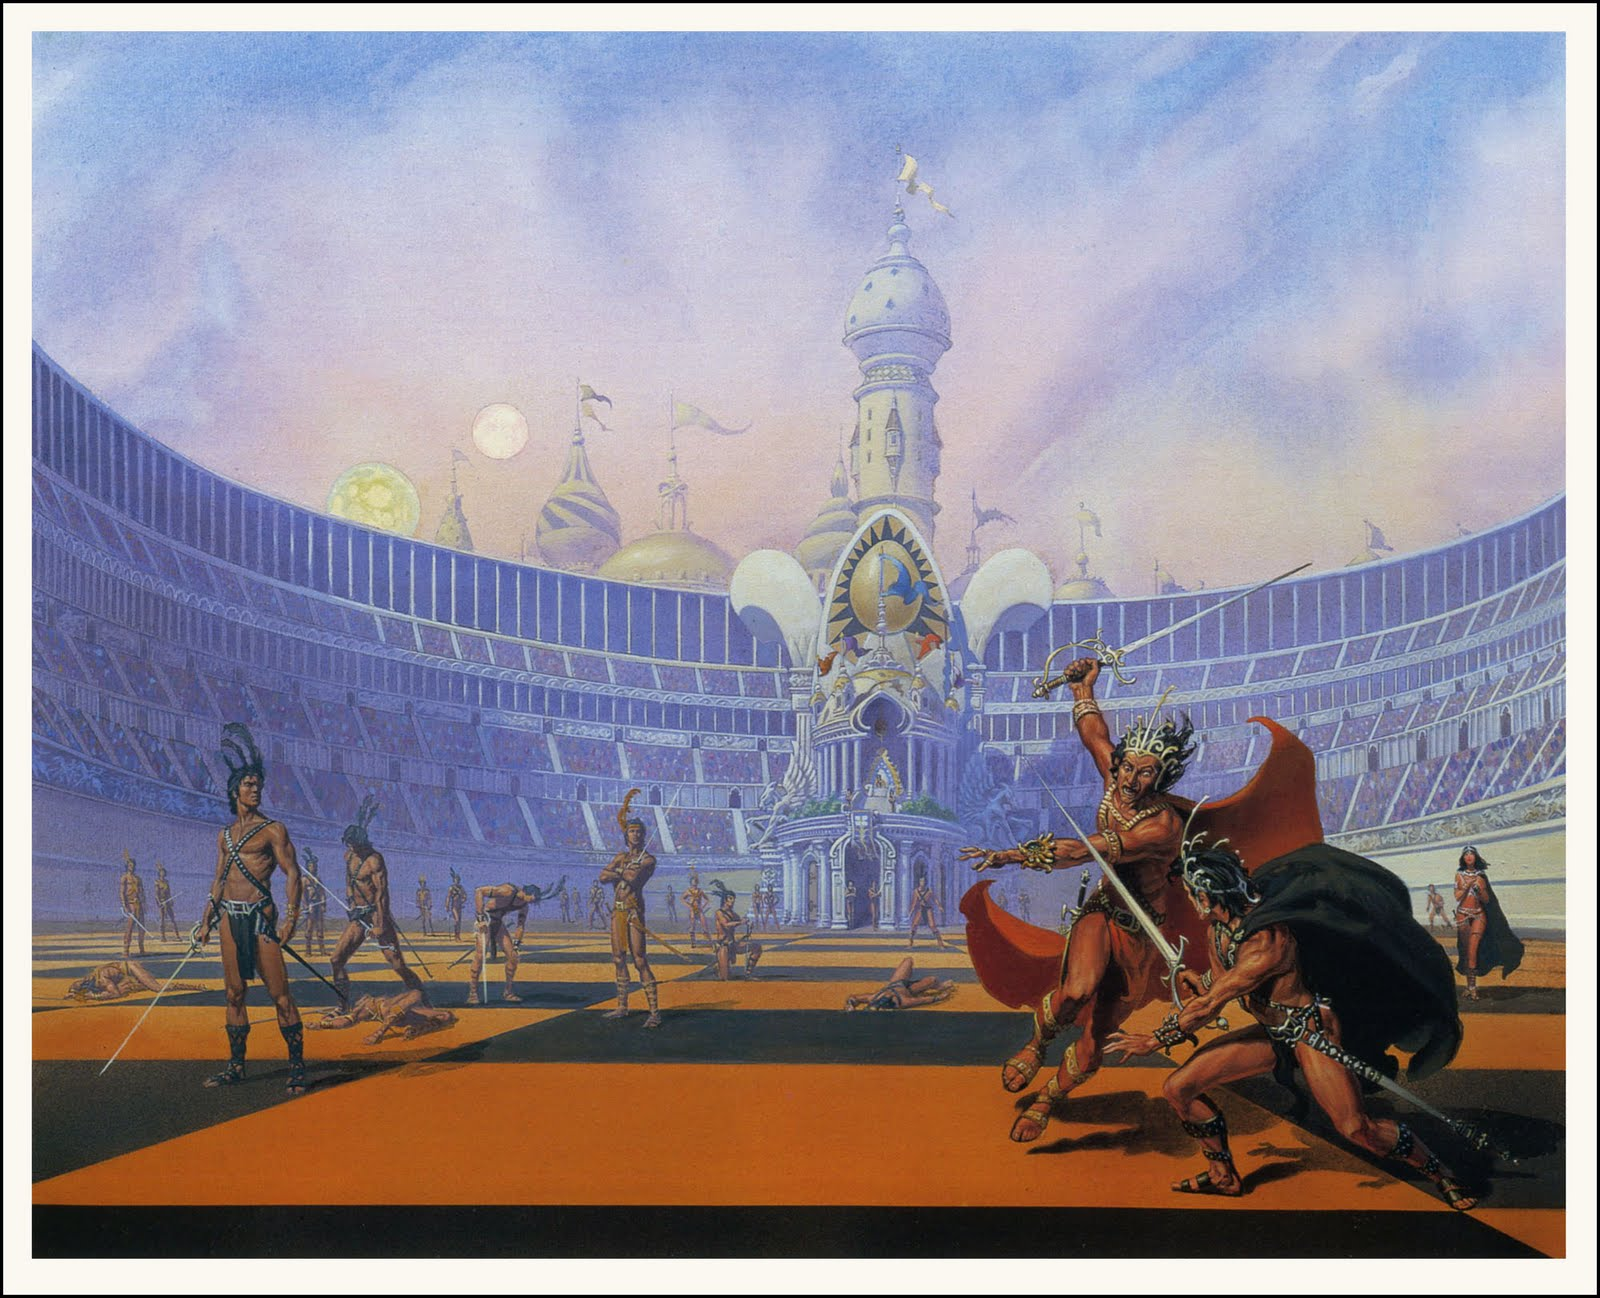 Skimpy Outfits (loincloths) In Fanasty and Conan - Page 12 MichaelWhelan_ChessmenOfMars_100